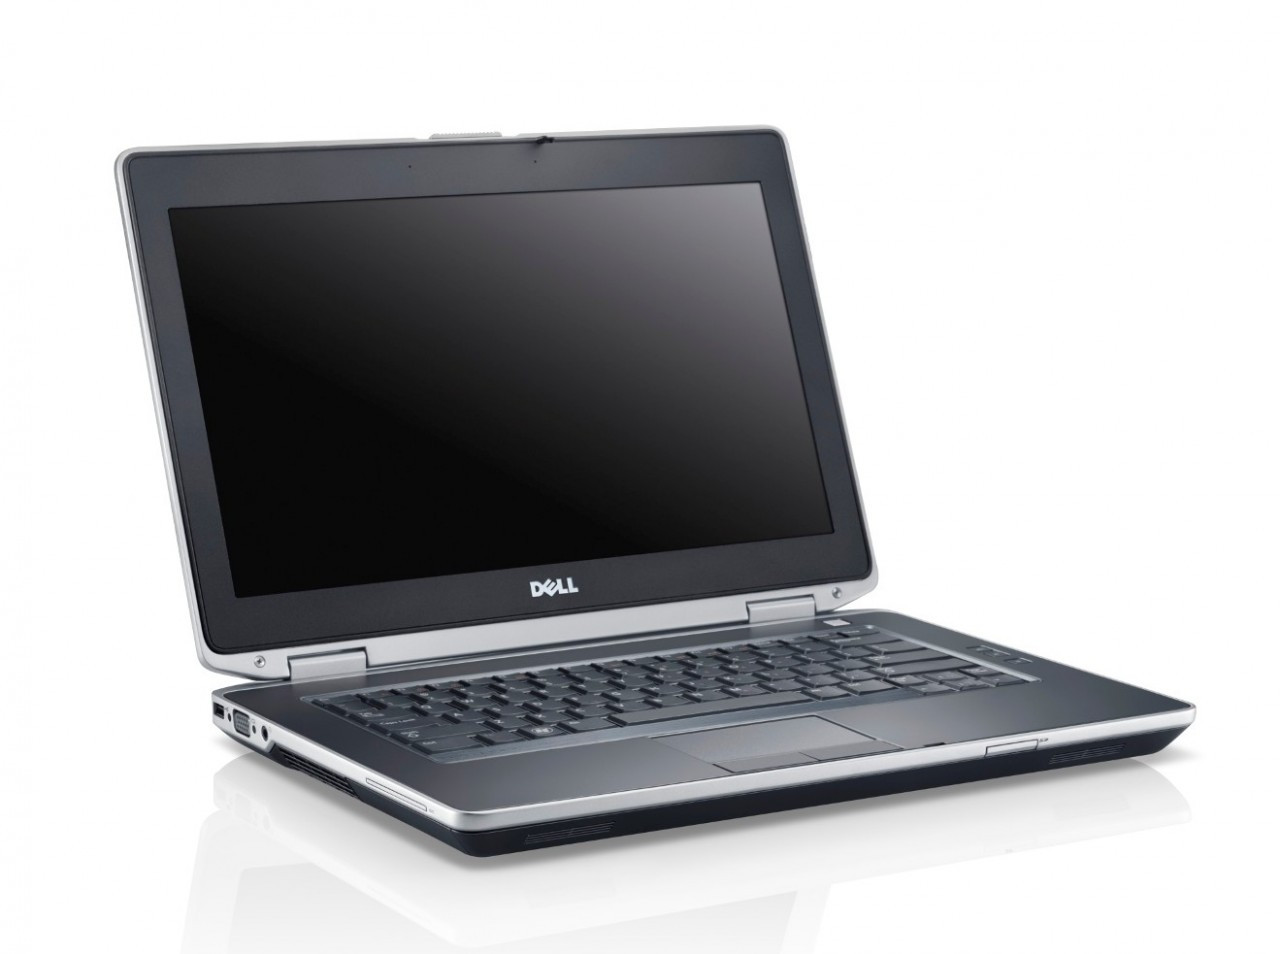 Dell Latitude E6430 Core i7 Windows 10 Professional Business Grade Laptop (Build Your Own!)